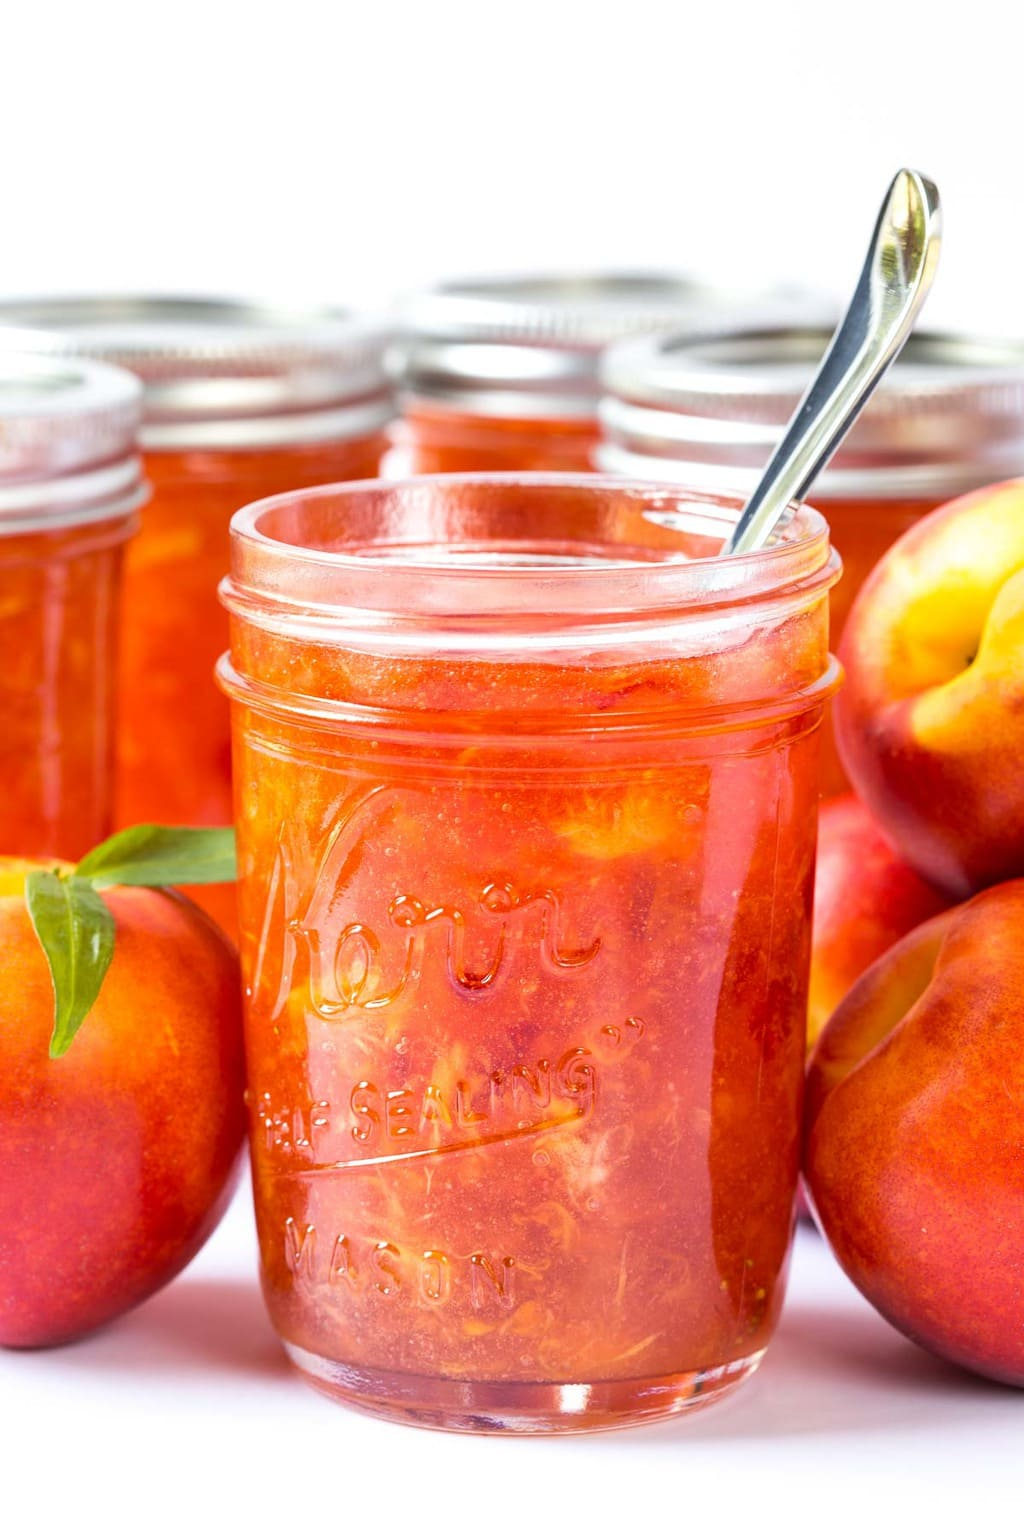 A photo of canning jars filled with peach freezer jam surrounded by fresh peaches.